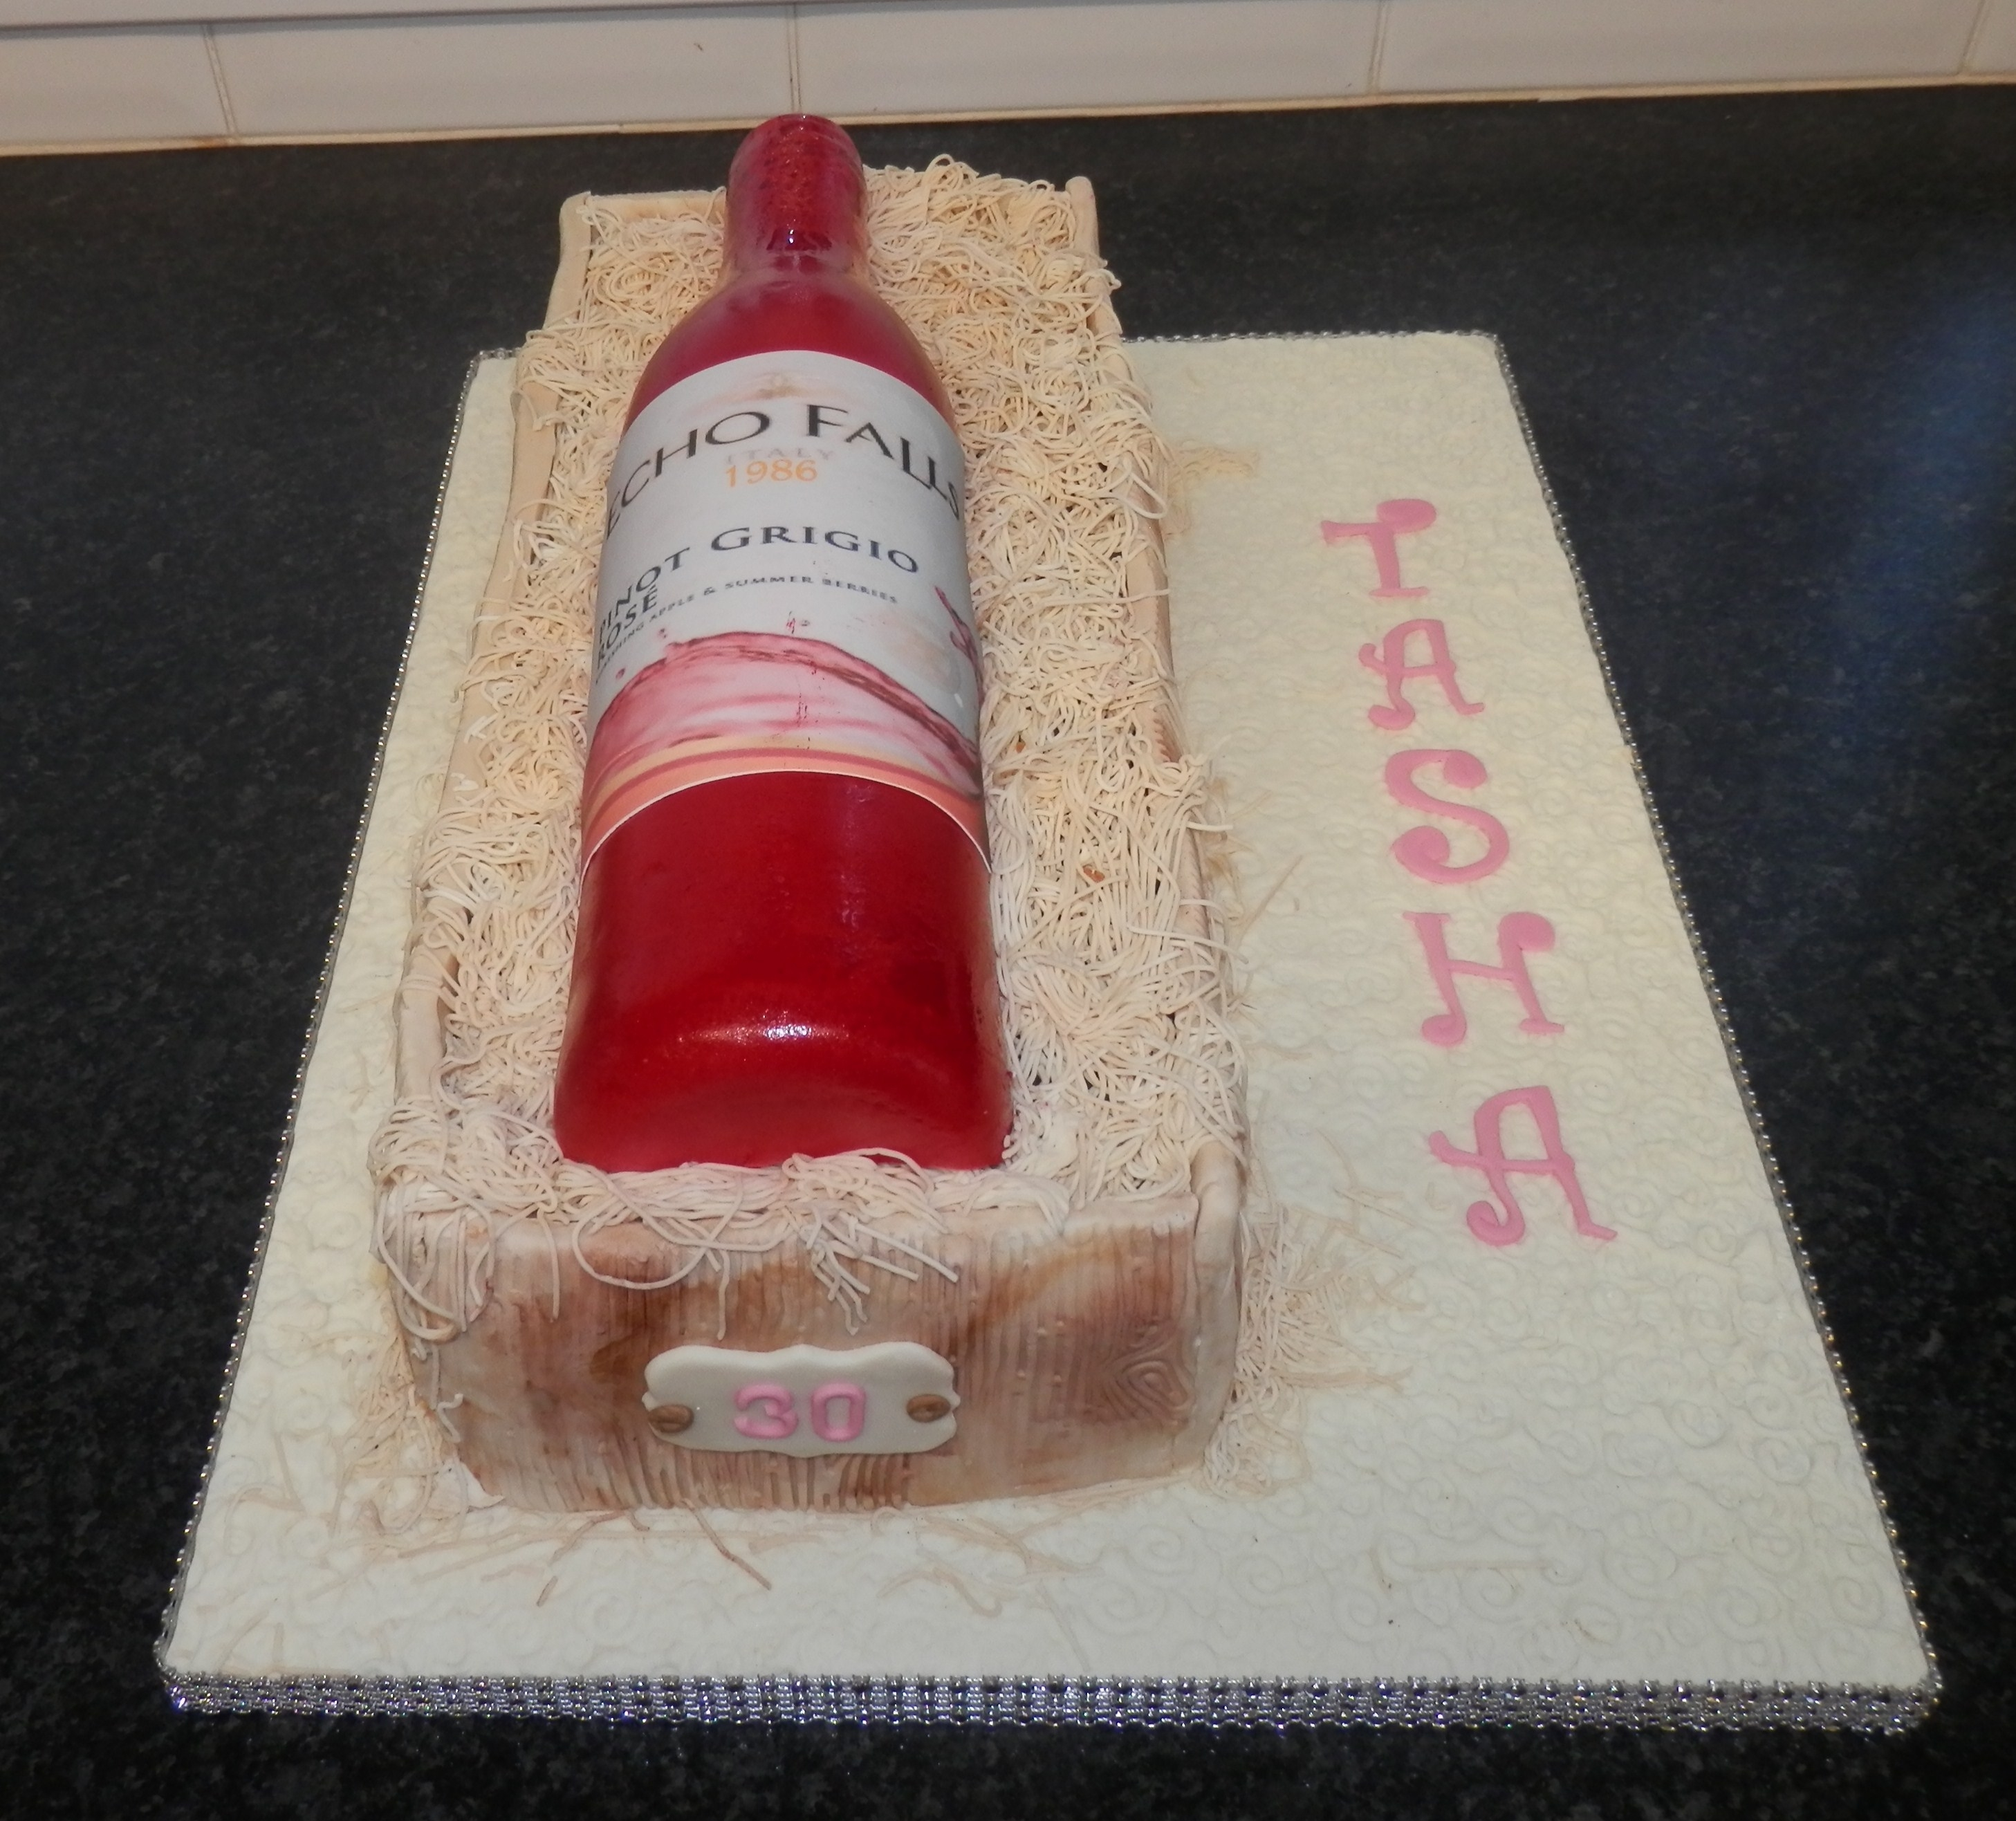 Cake Decorating Wine Bottles : susypots  s Cake Decorating Profile on Cake Central